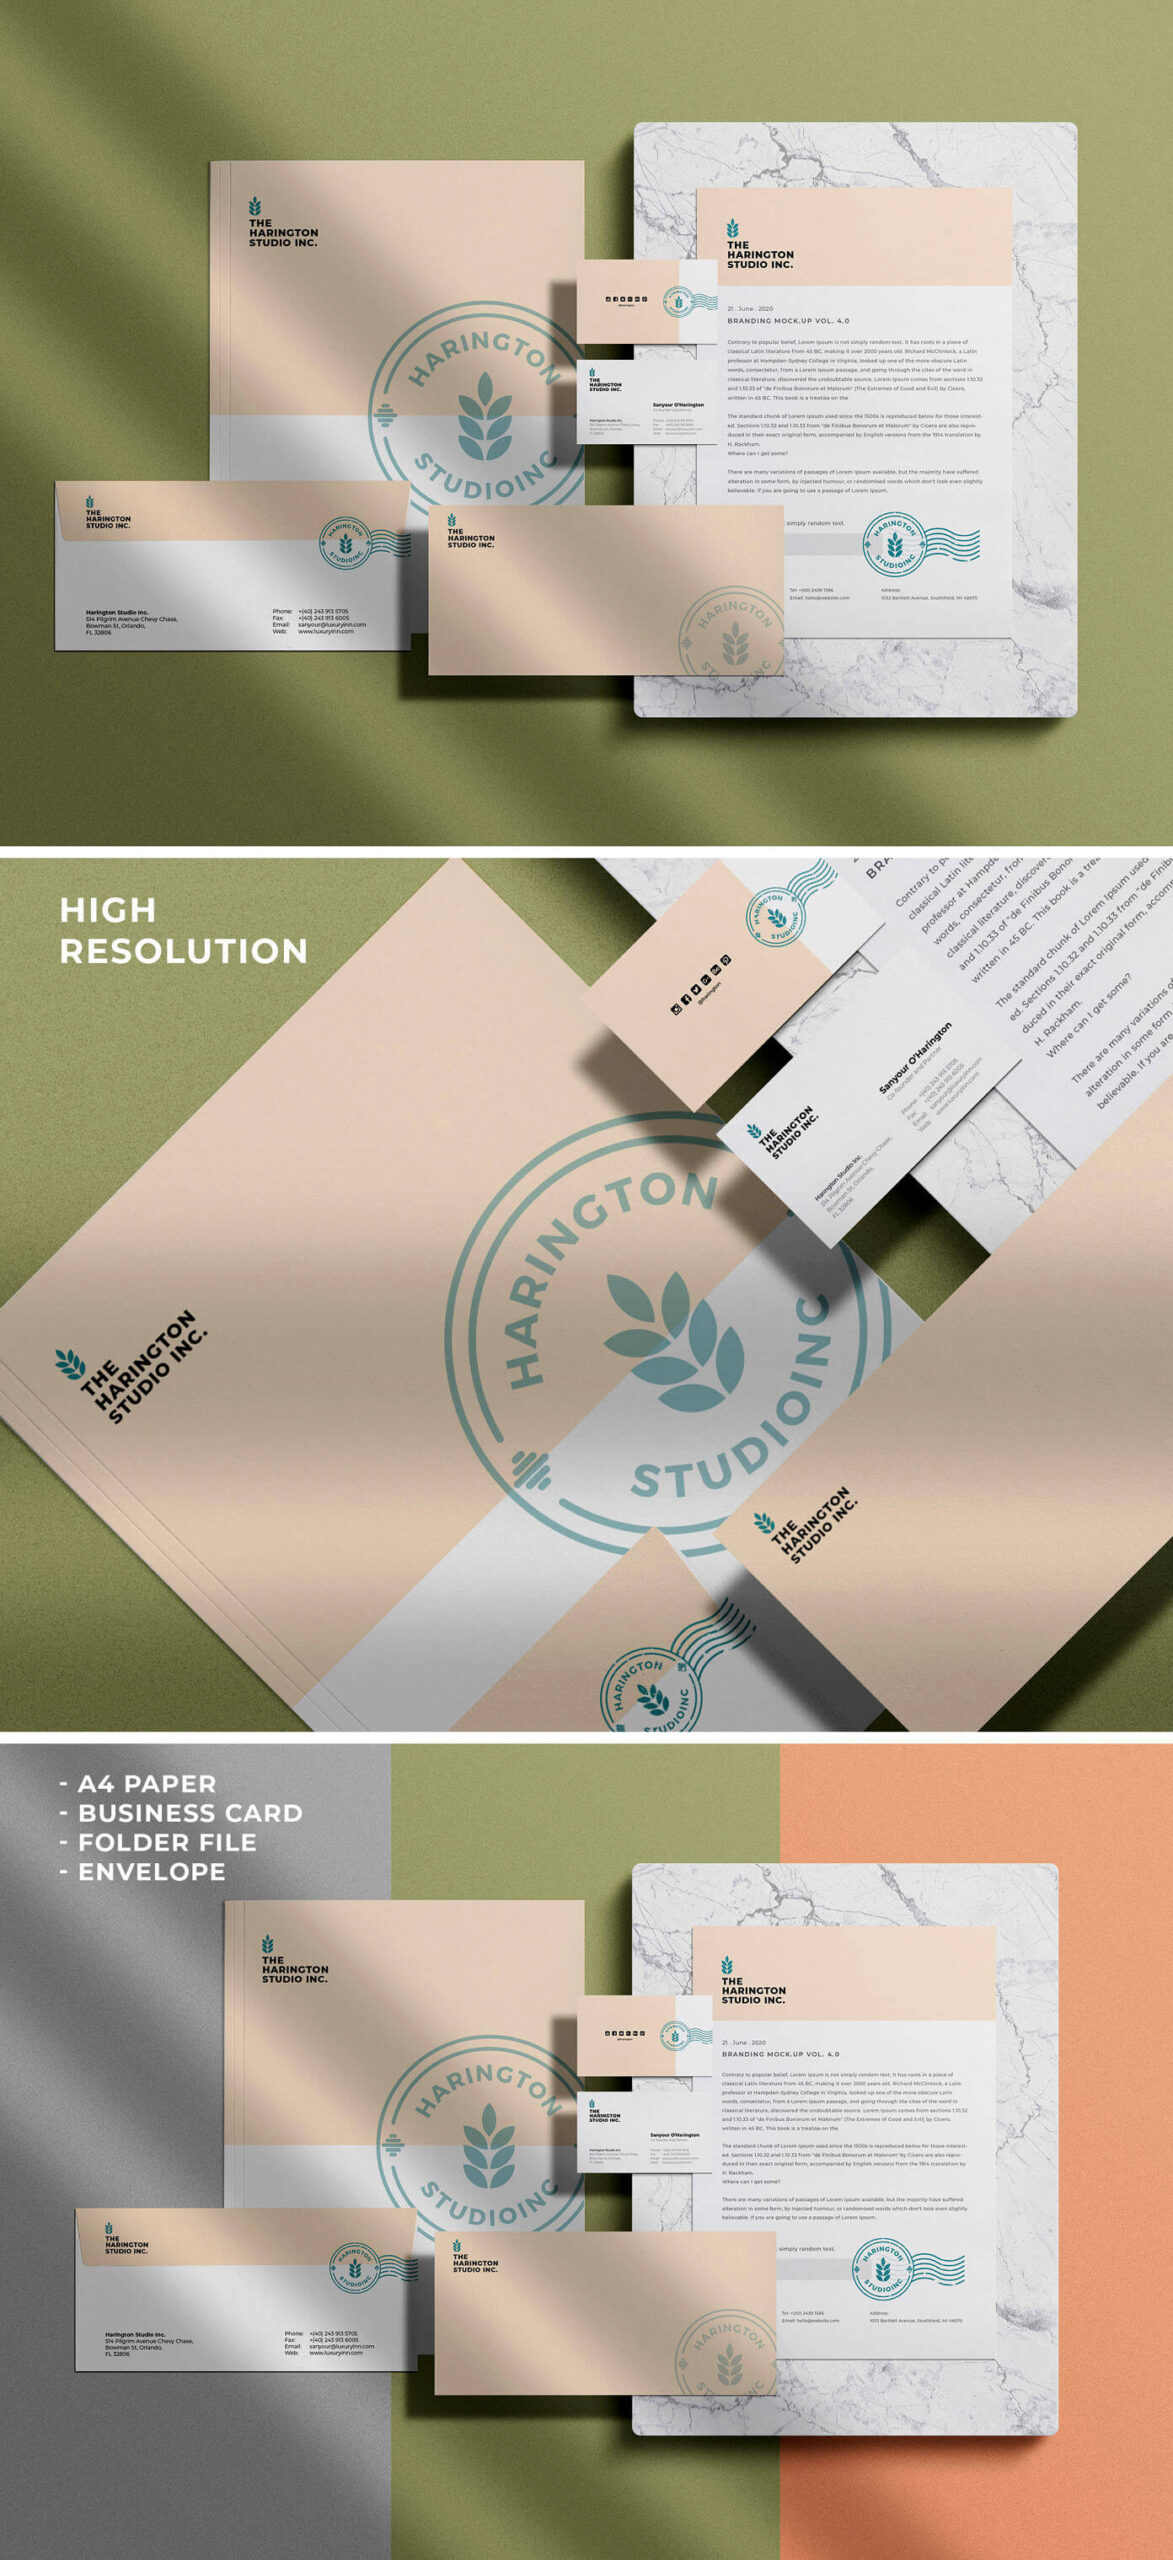 Free Stationery Branding Mockup PSD Template1